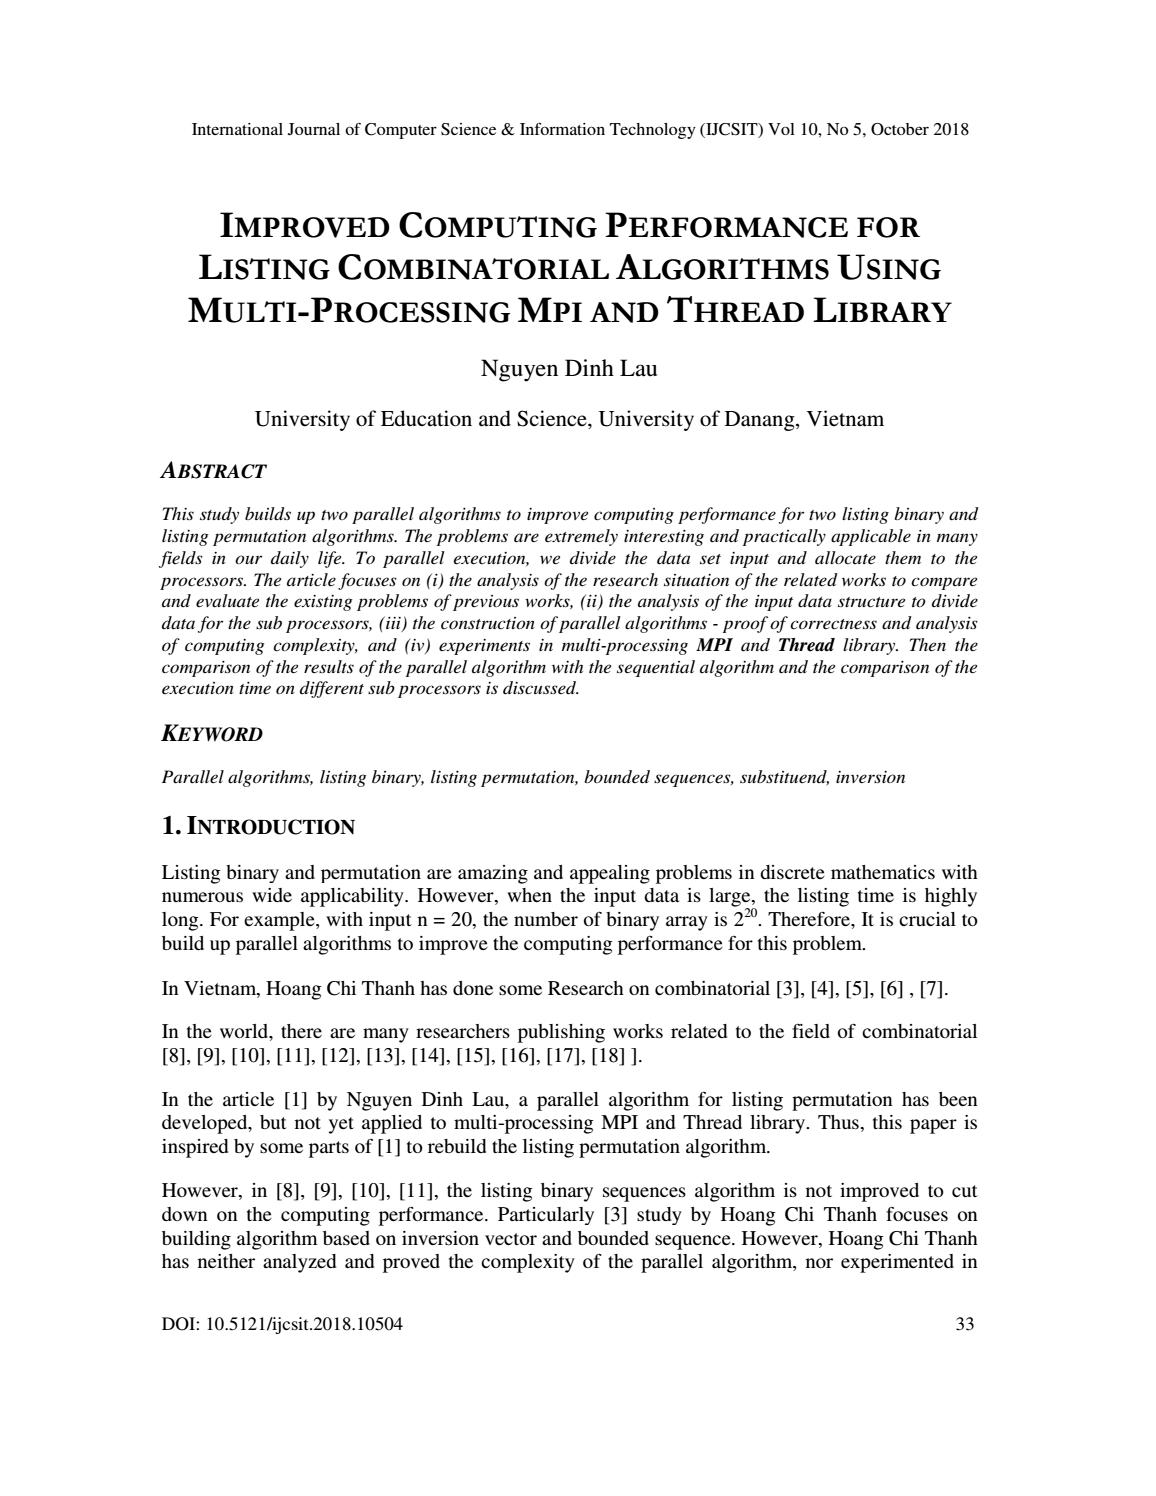 IMPROVED COMPUTING PERFORMANCE FOR LISTING COMBINATORIAL ALGORITHMS